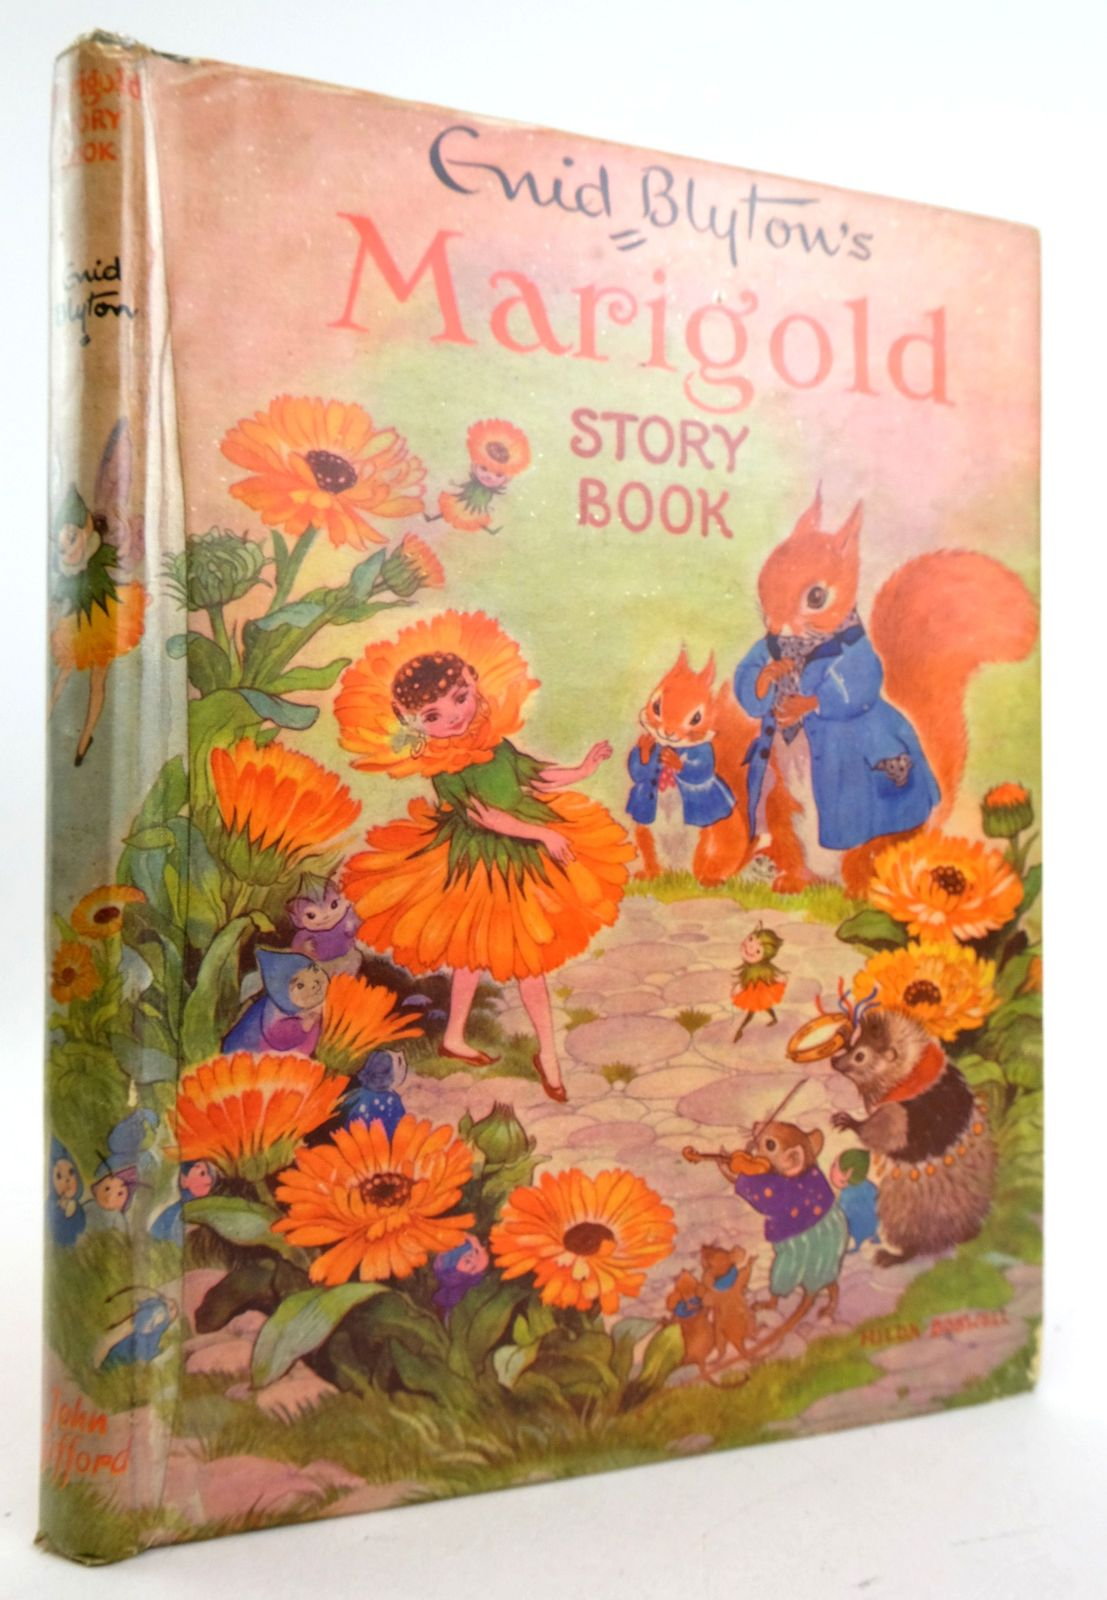 Photo of ENID BLYTON'S MARIGOLD STORY BOOK written by Blyton, Enid illustrated by Boswell, Hilda Hall, Dorothy et al.,  published by John Gifford Ltd. (STOCK CODE: 1819780)  for sale by Stella & Rose's Books